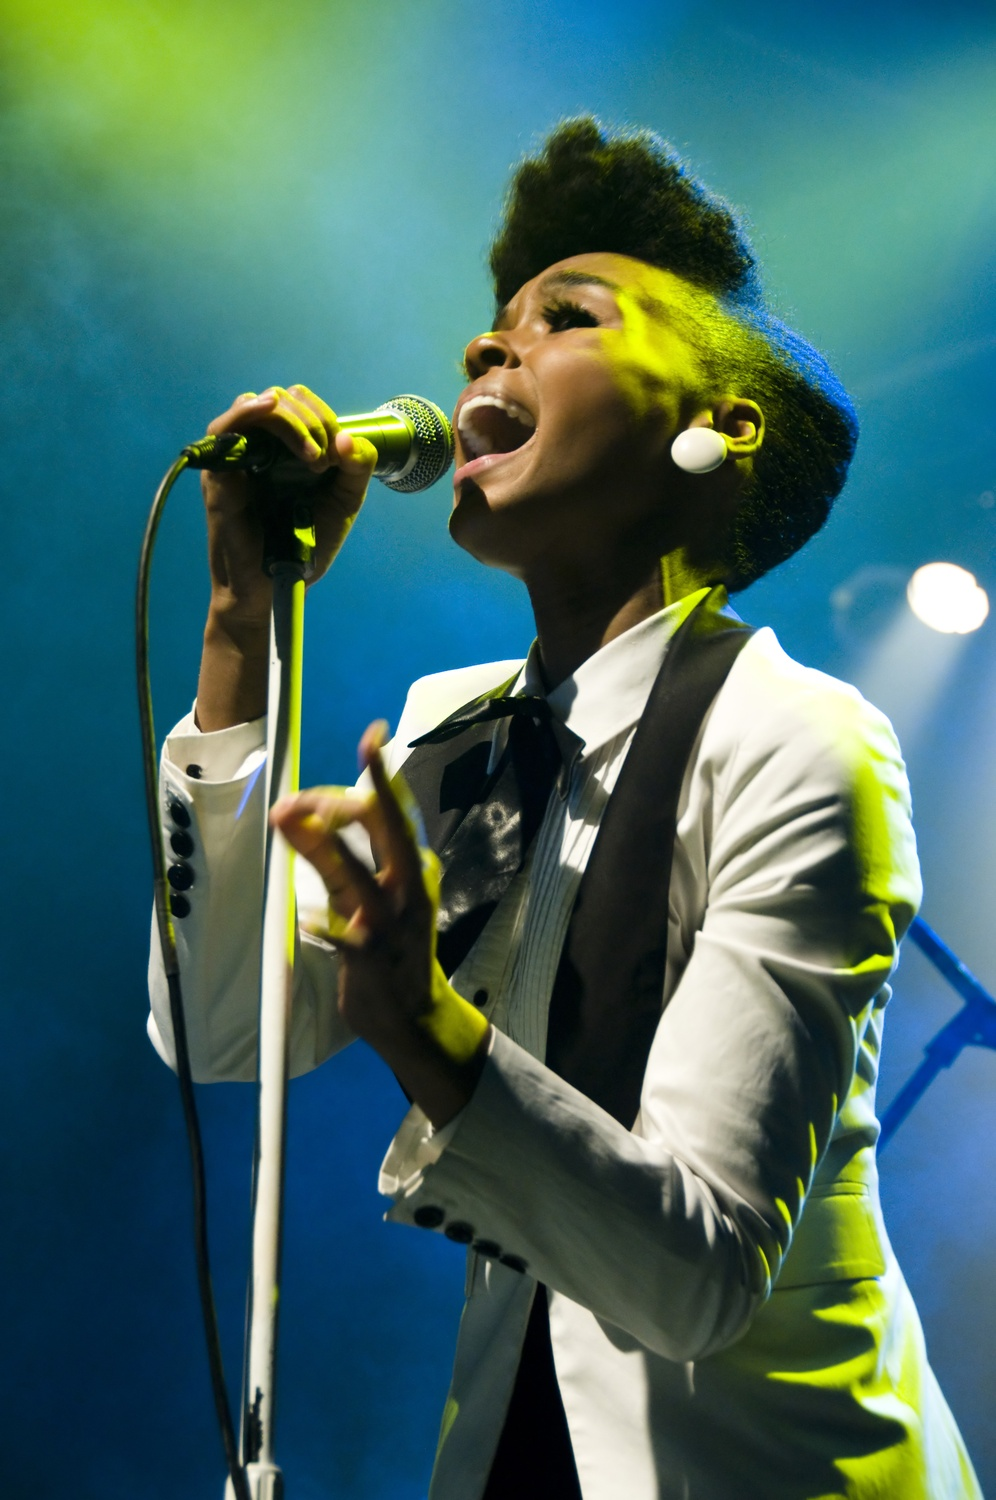 Janelle Monáe, an American R&B and Soul musician, will be performing at Yardfest 2014.